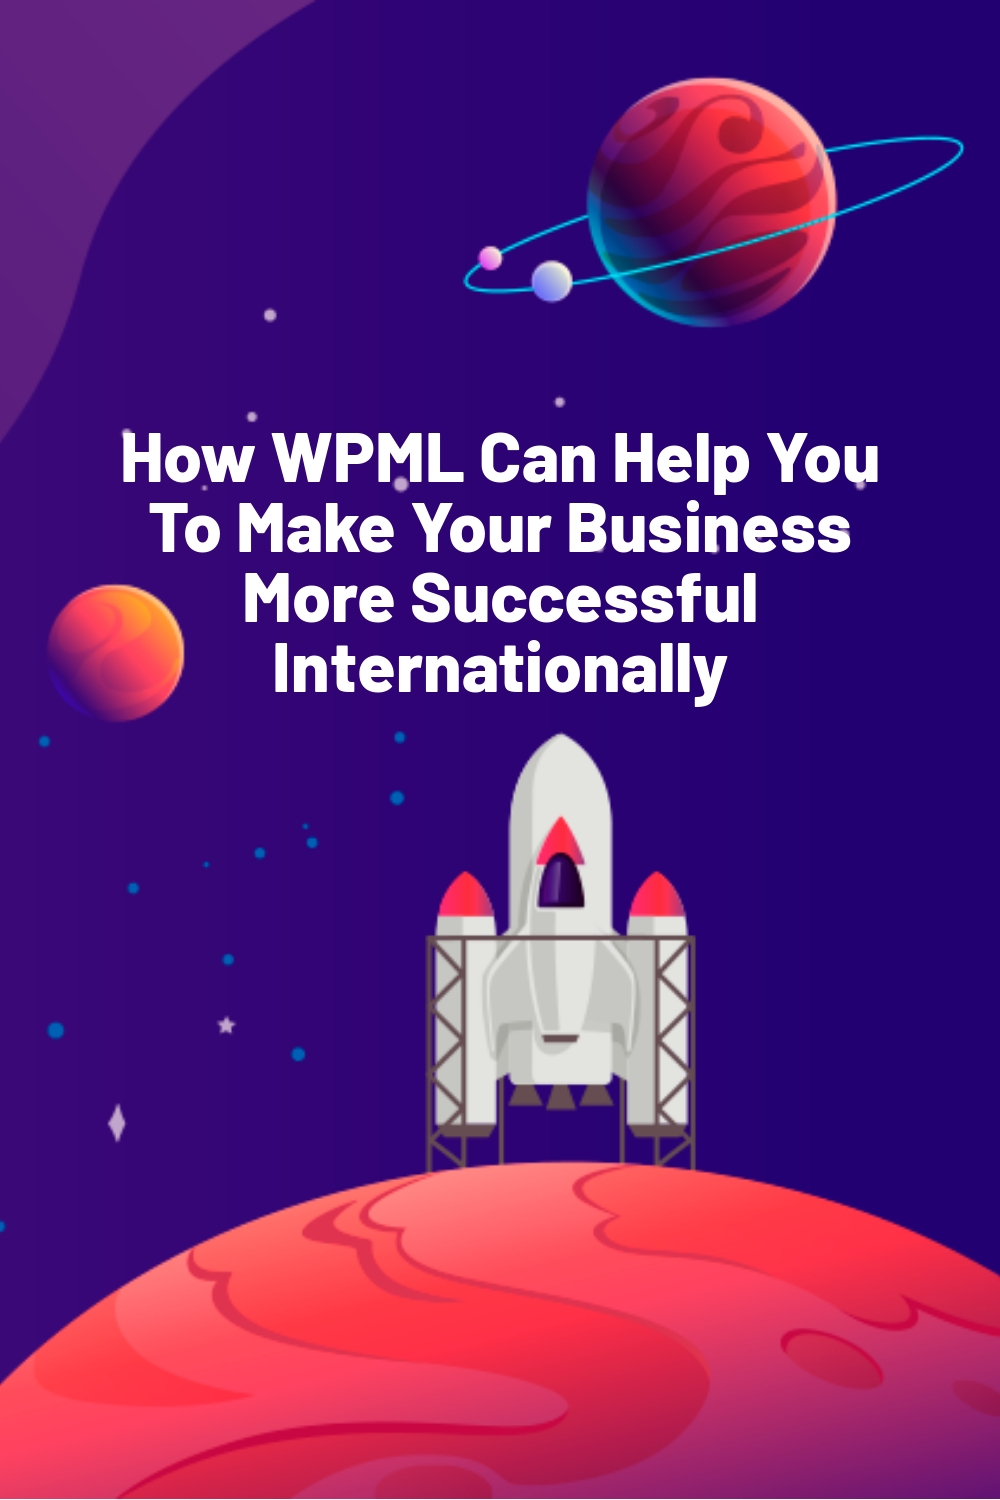 How WPML Can Help You To Make Your Business More Successful Internationally